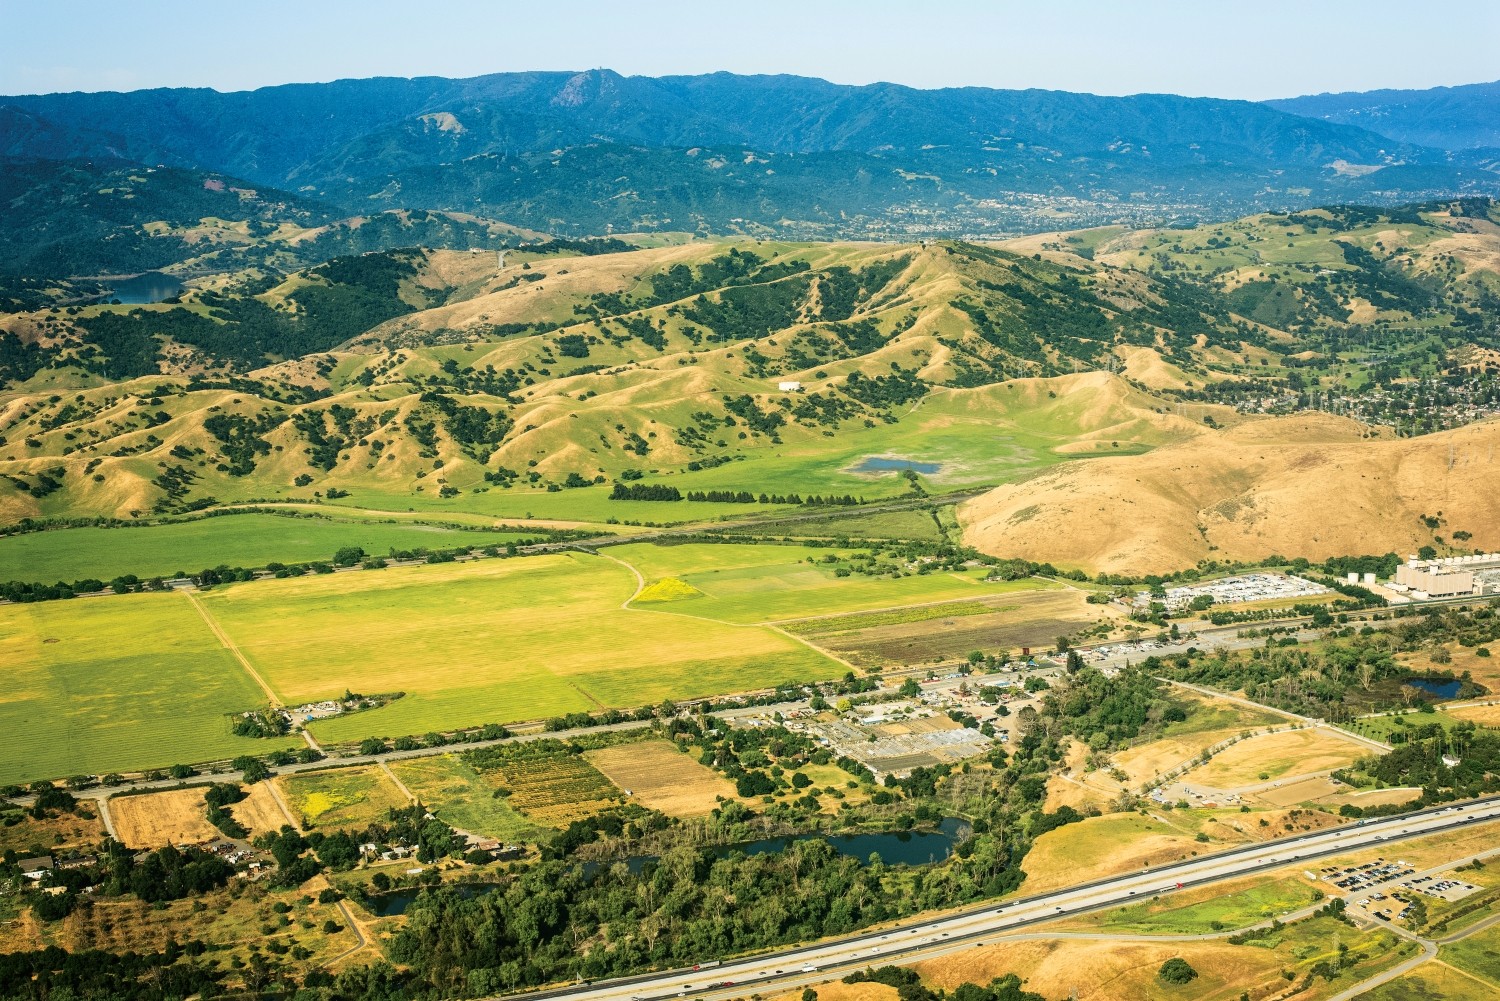 Aerial view of North Coyote Valley looking west across the Santa Cruz Mountains